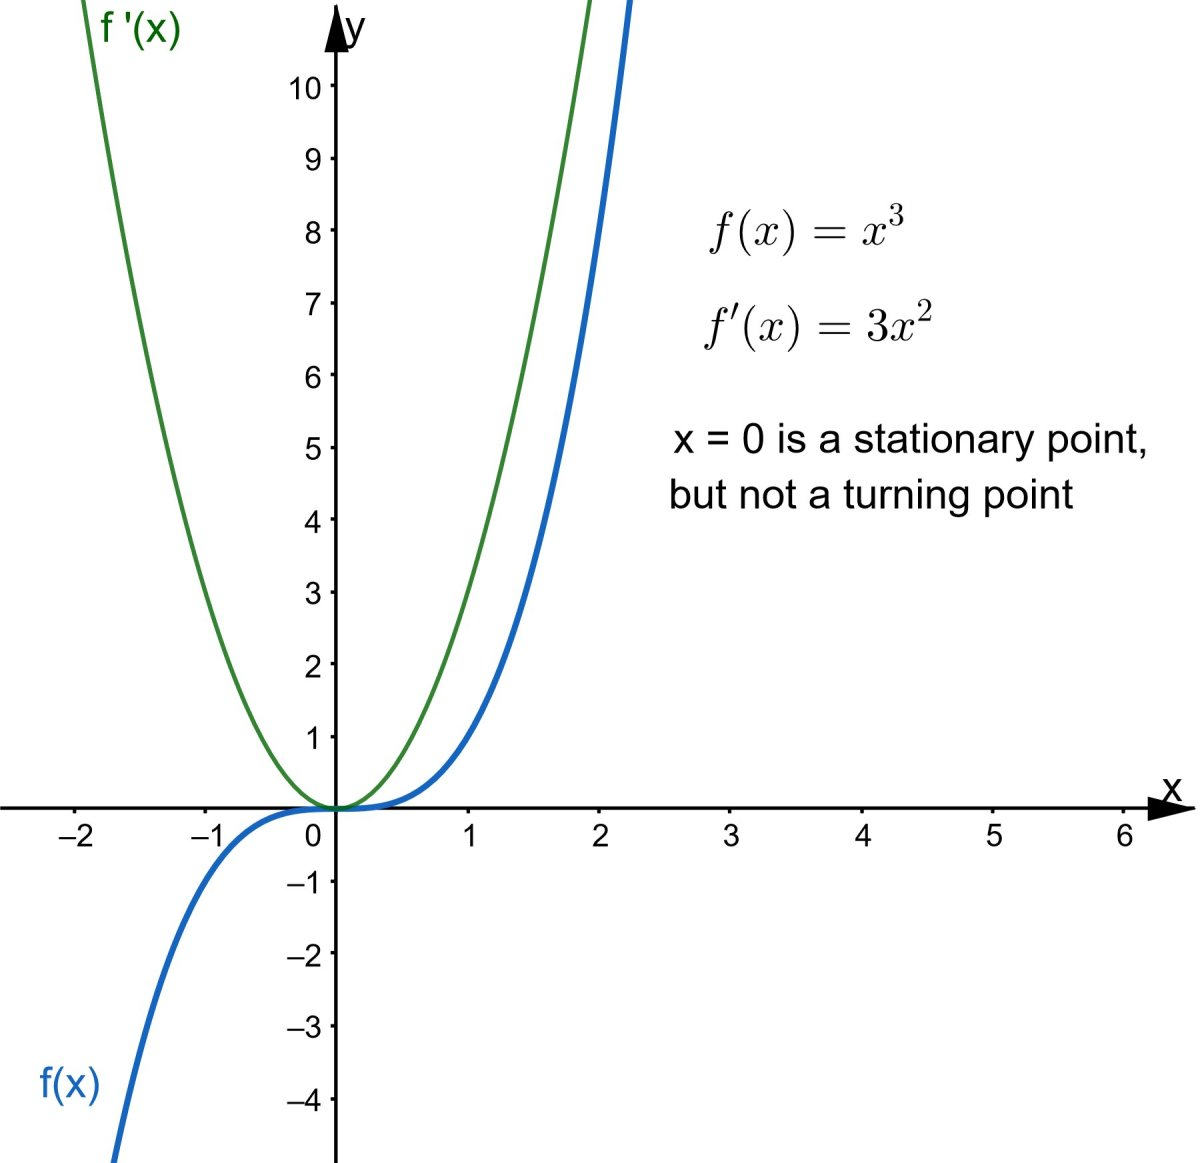 Example of a function with a stationary point that is not a turning point. The derivative f'(x) at x = 0 is 0, but doesn't change sign.